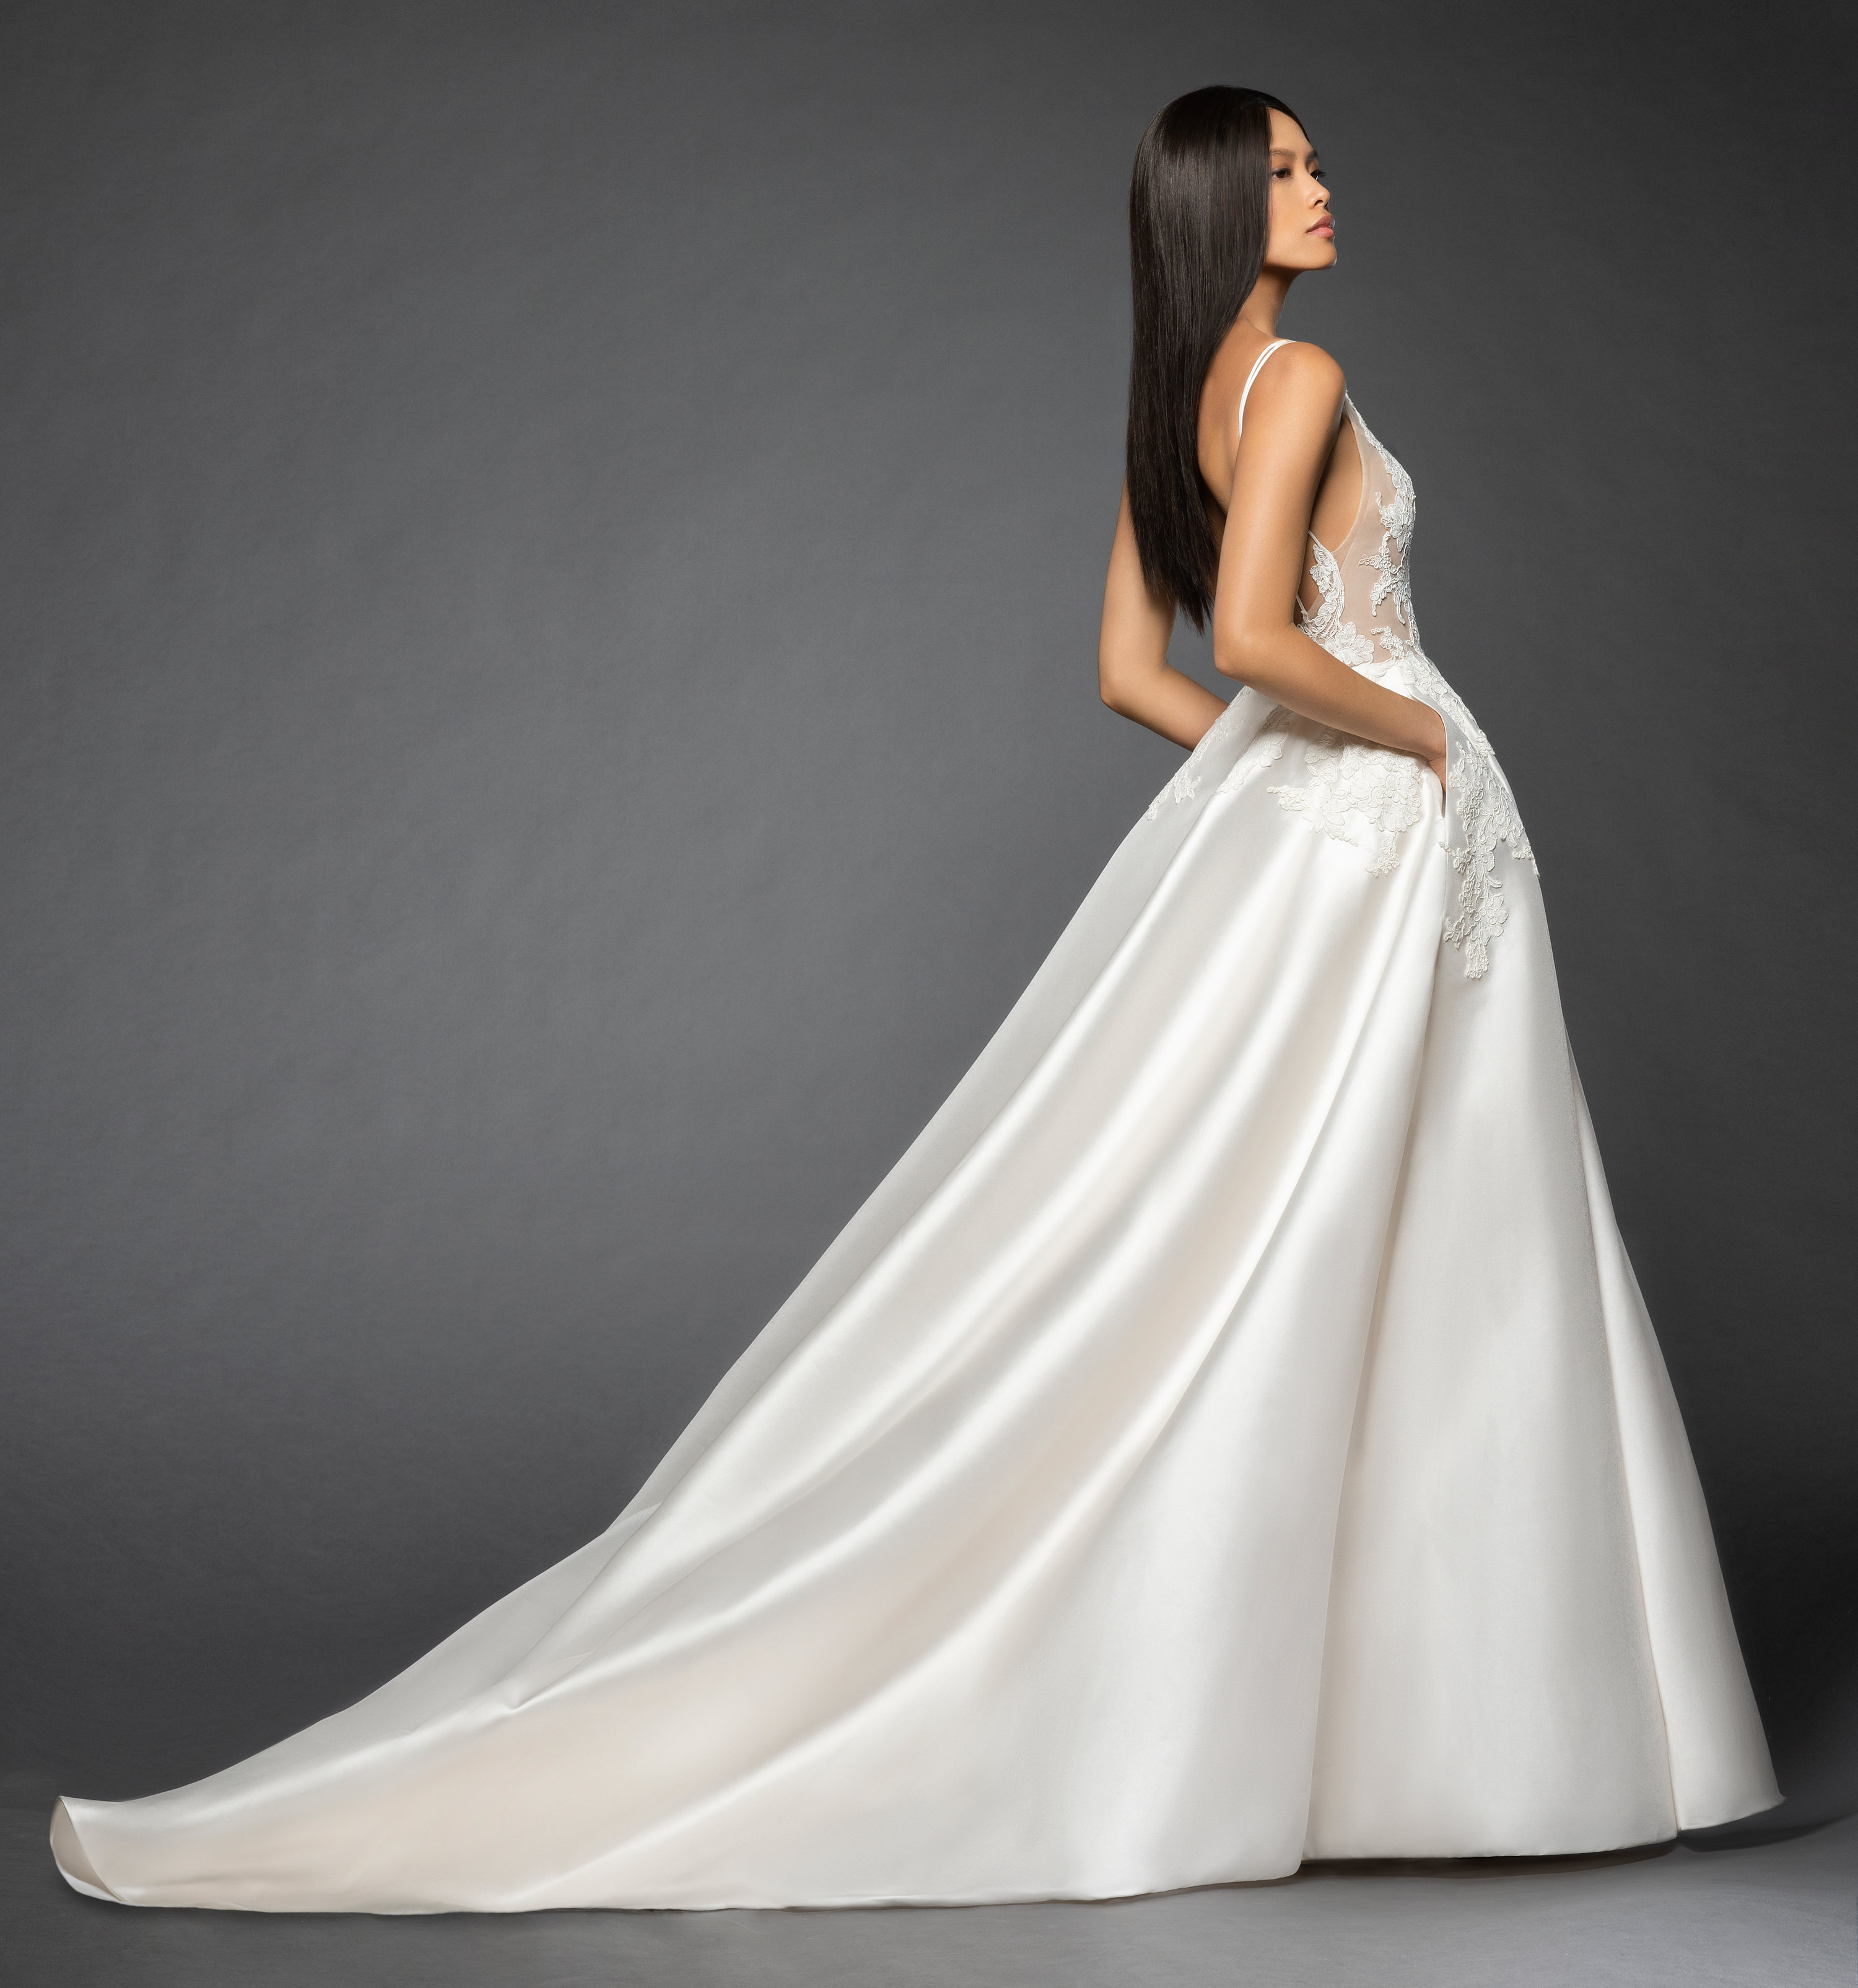 Wedding Gown Stores Nyc: Sleeveless Illusion Lace Bodice Bodice Silk Skirt A-line